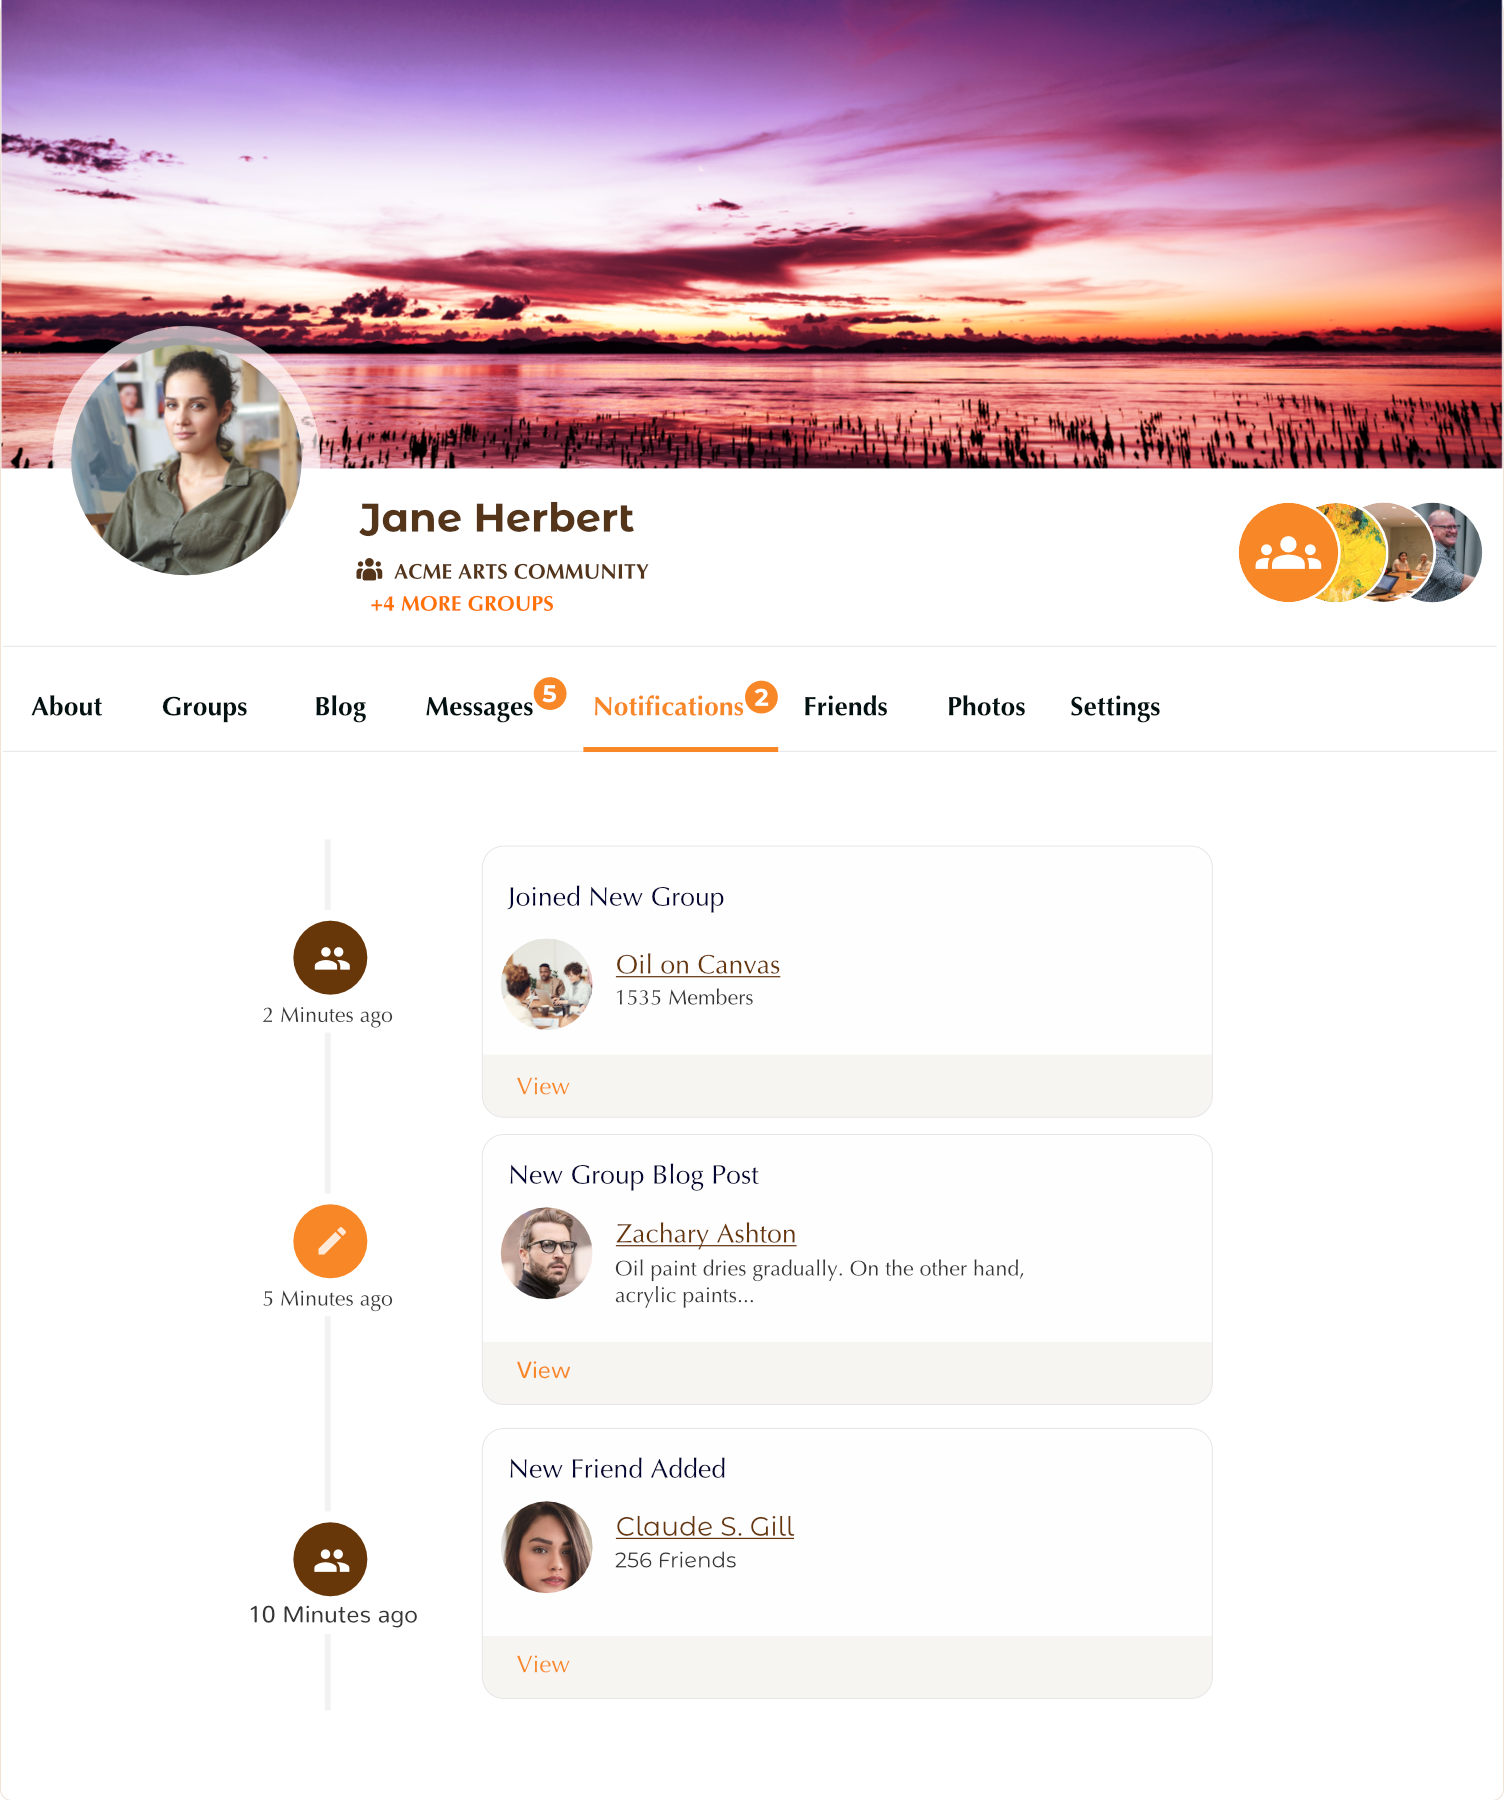 profilegrid-user-profiles-groups-and-communities screenshot 3